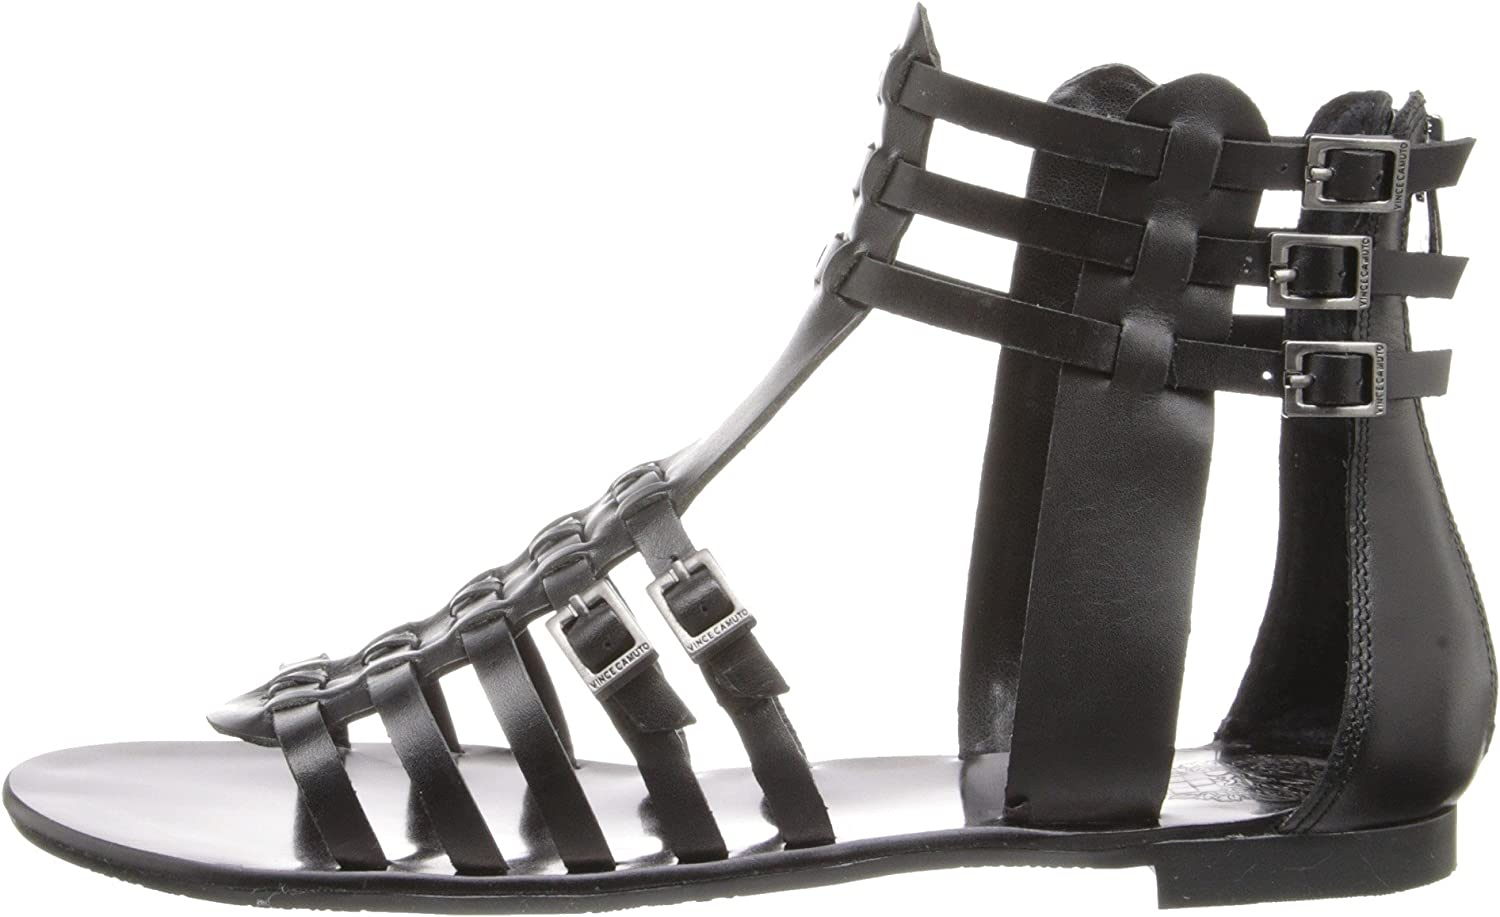 Vince Camuto Womens Jatella Leather Open Toe Special Occasion Gladiator Sandals